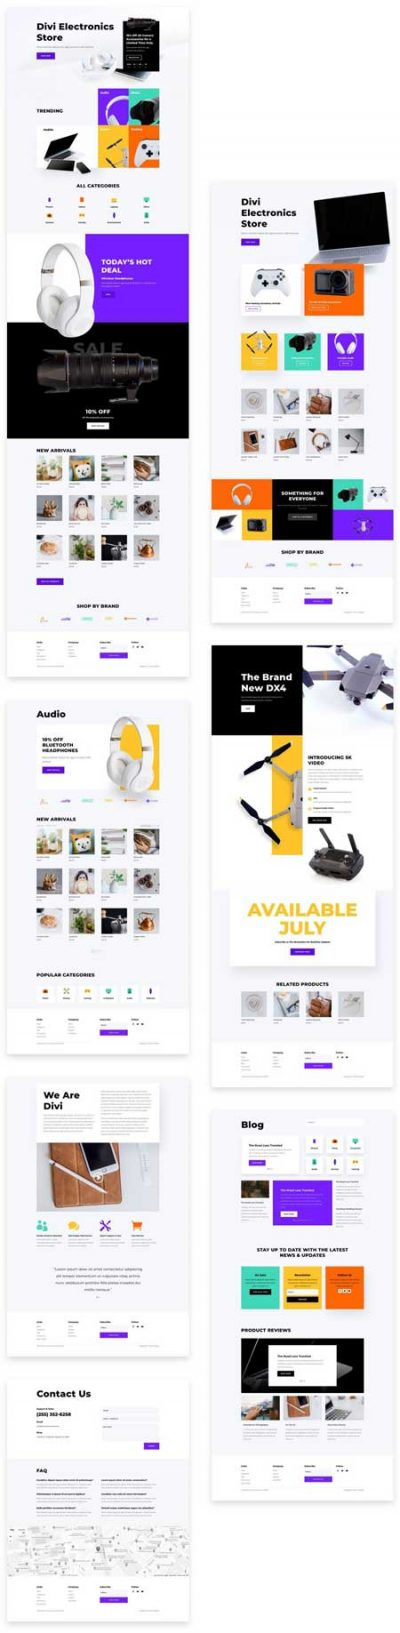 Divi Electronics Store Layout Pack